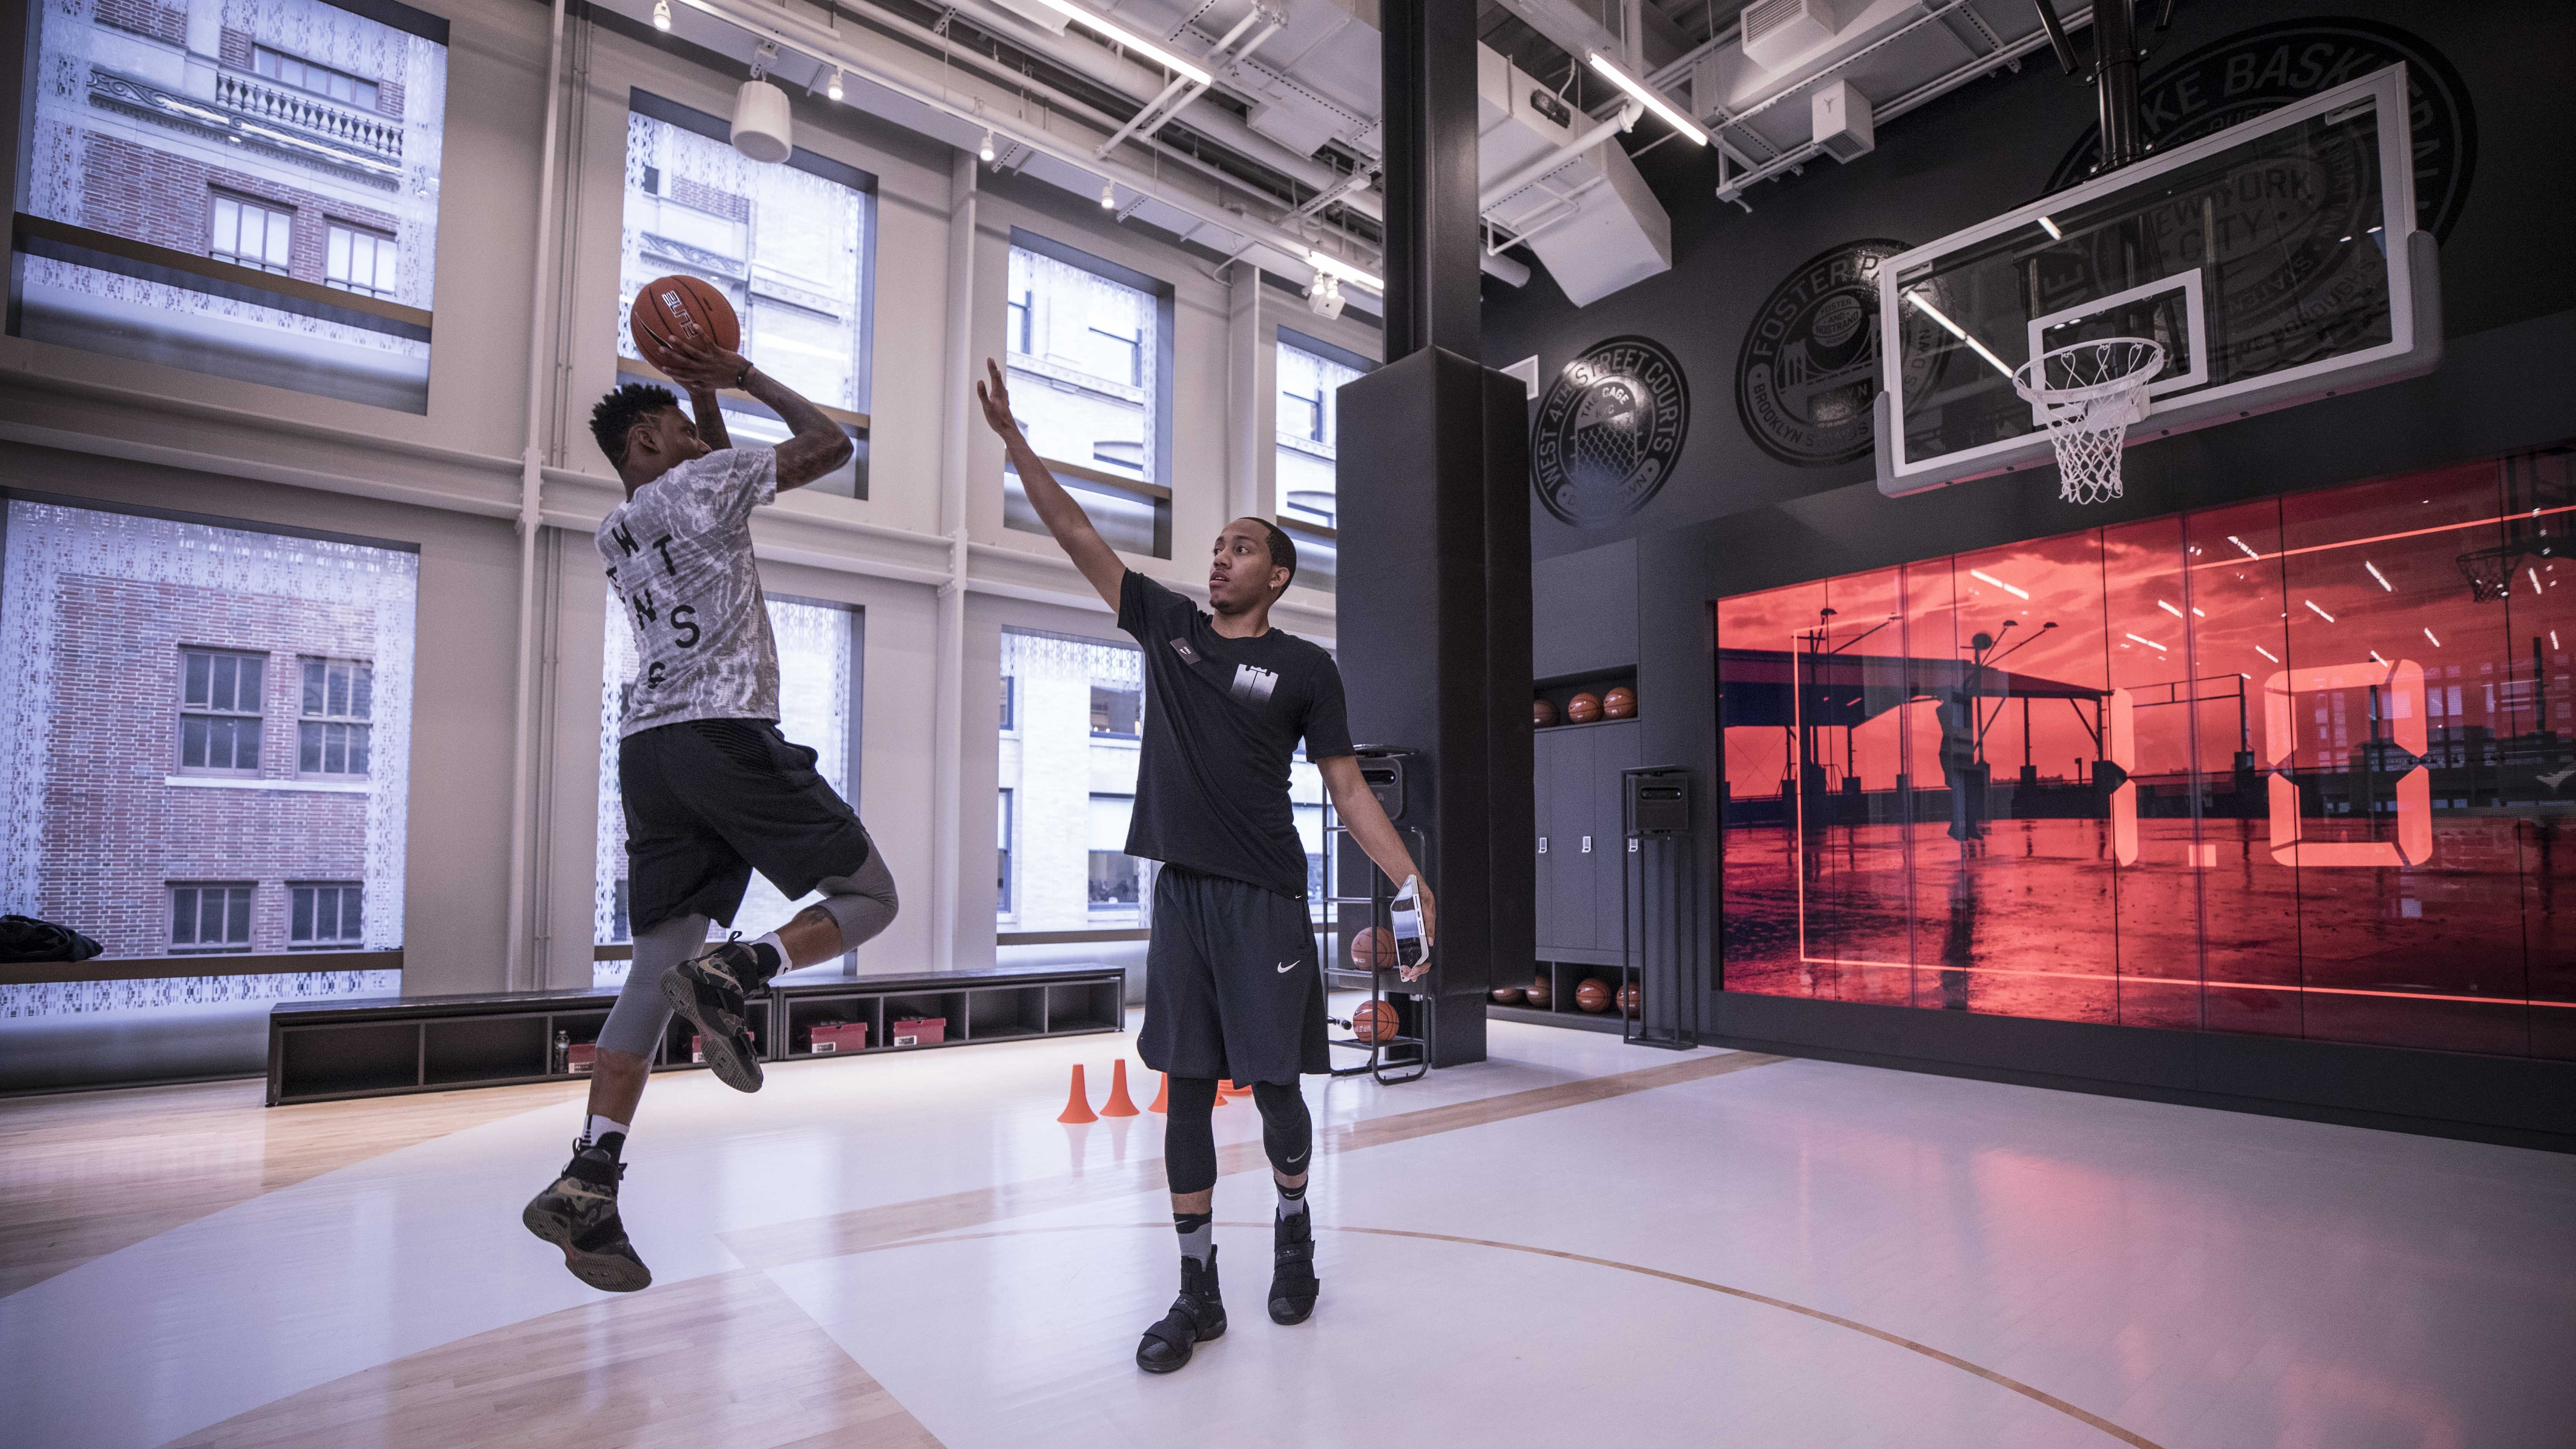 Nike's new store in New York has a basketball court where ...